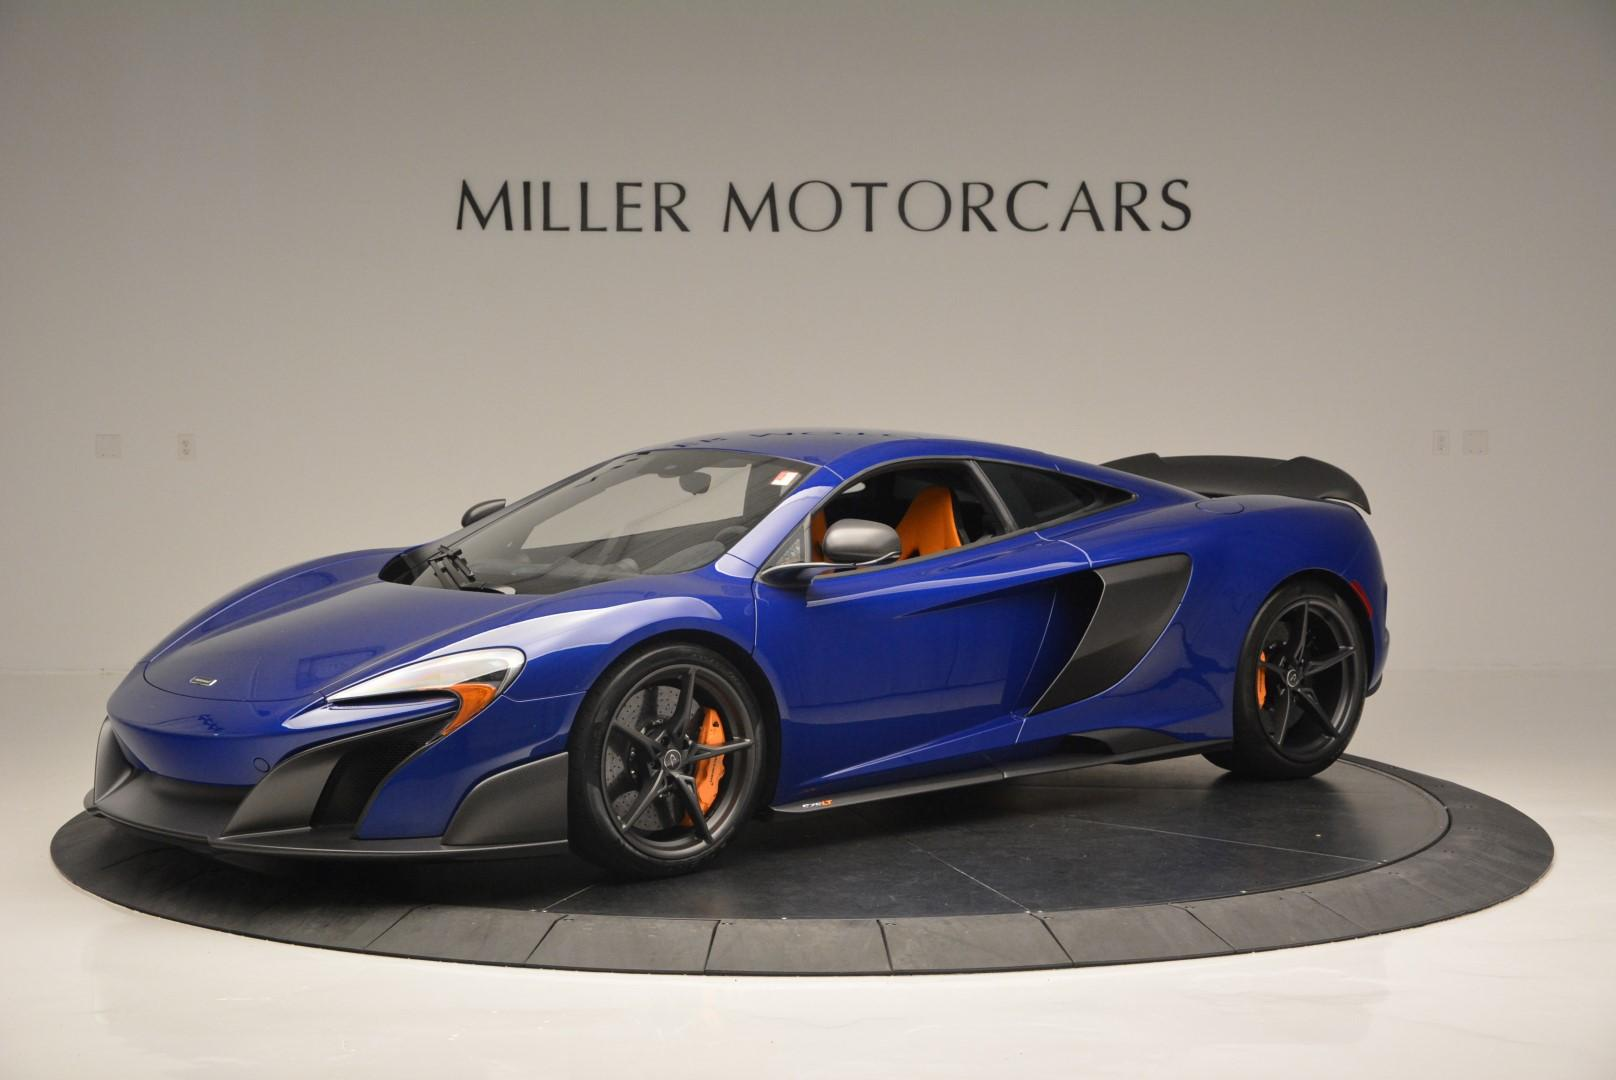 Used 2016 McLaren 675LT Coupe for sale Sold at Aston Martin of Greenwich in Greenwich CT 06830 1